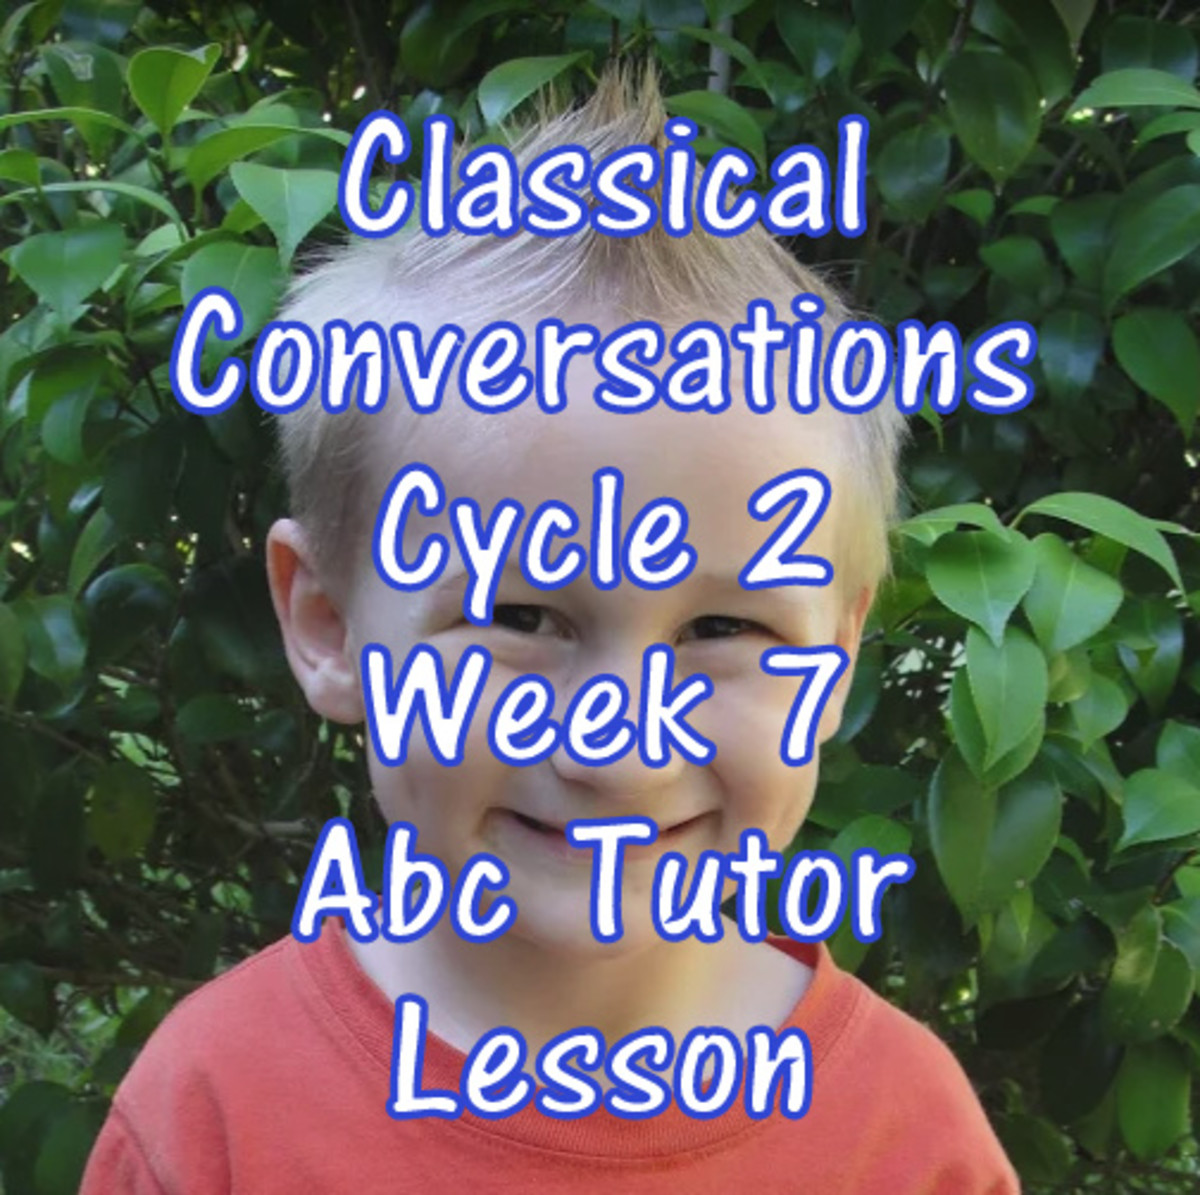 CC Classical Conversations Cycle 2 Week 7 Abc Tutor Lesson Plan